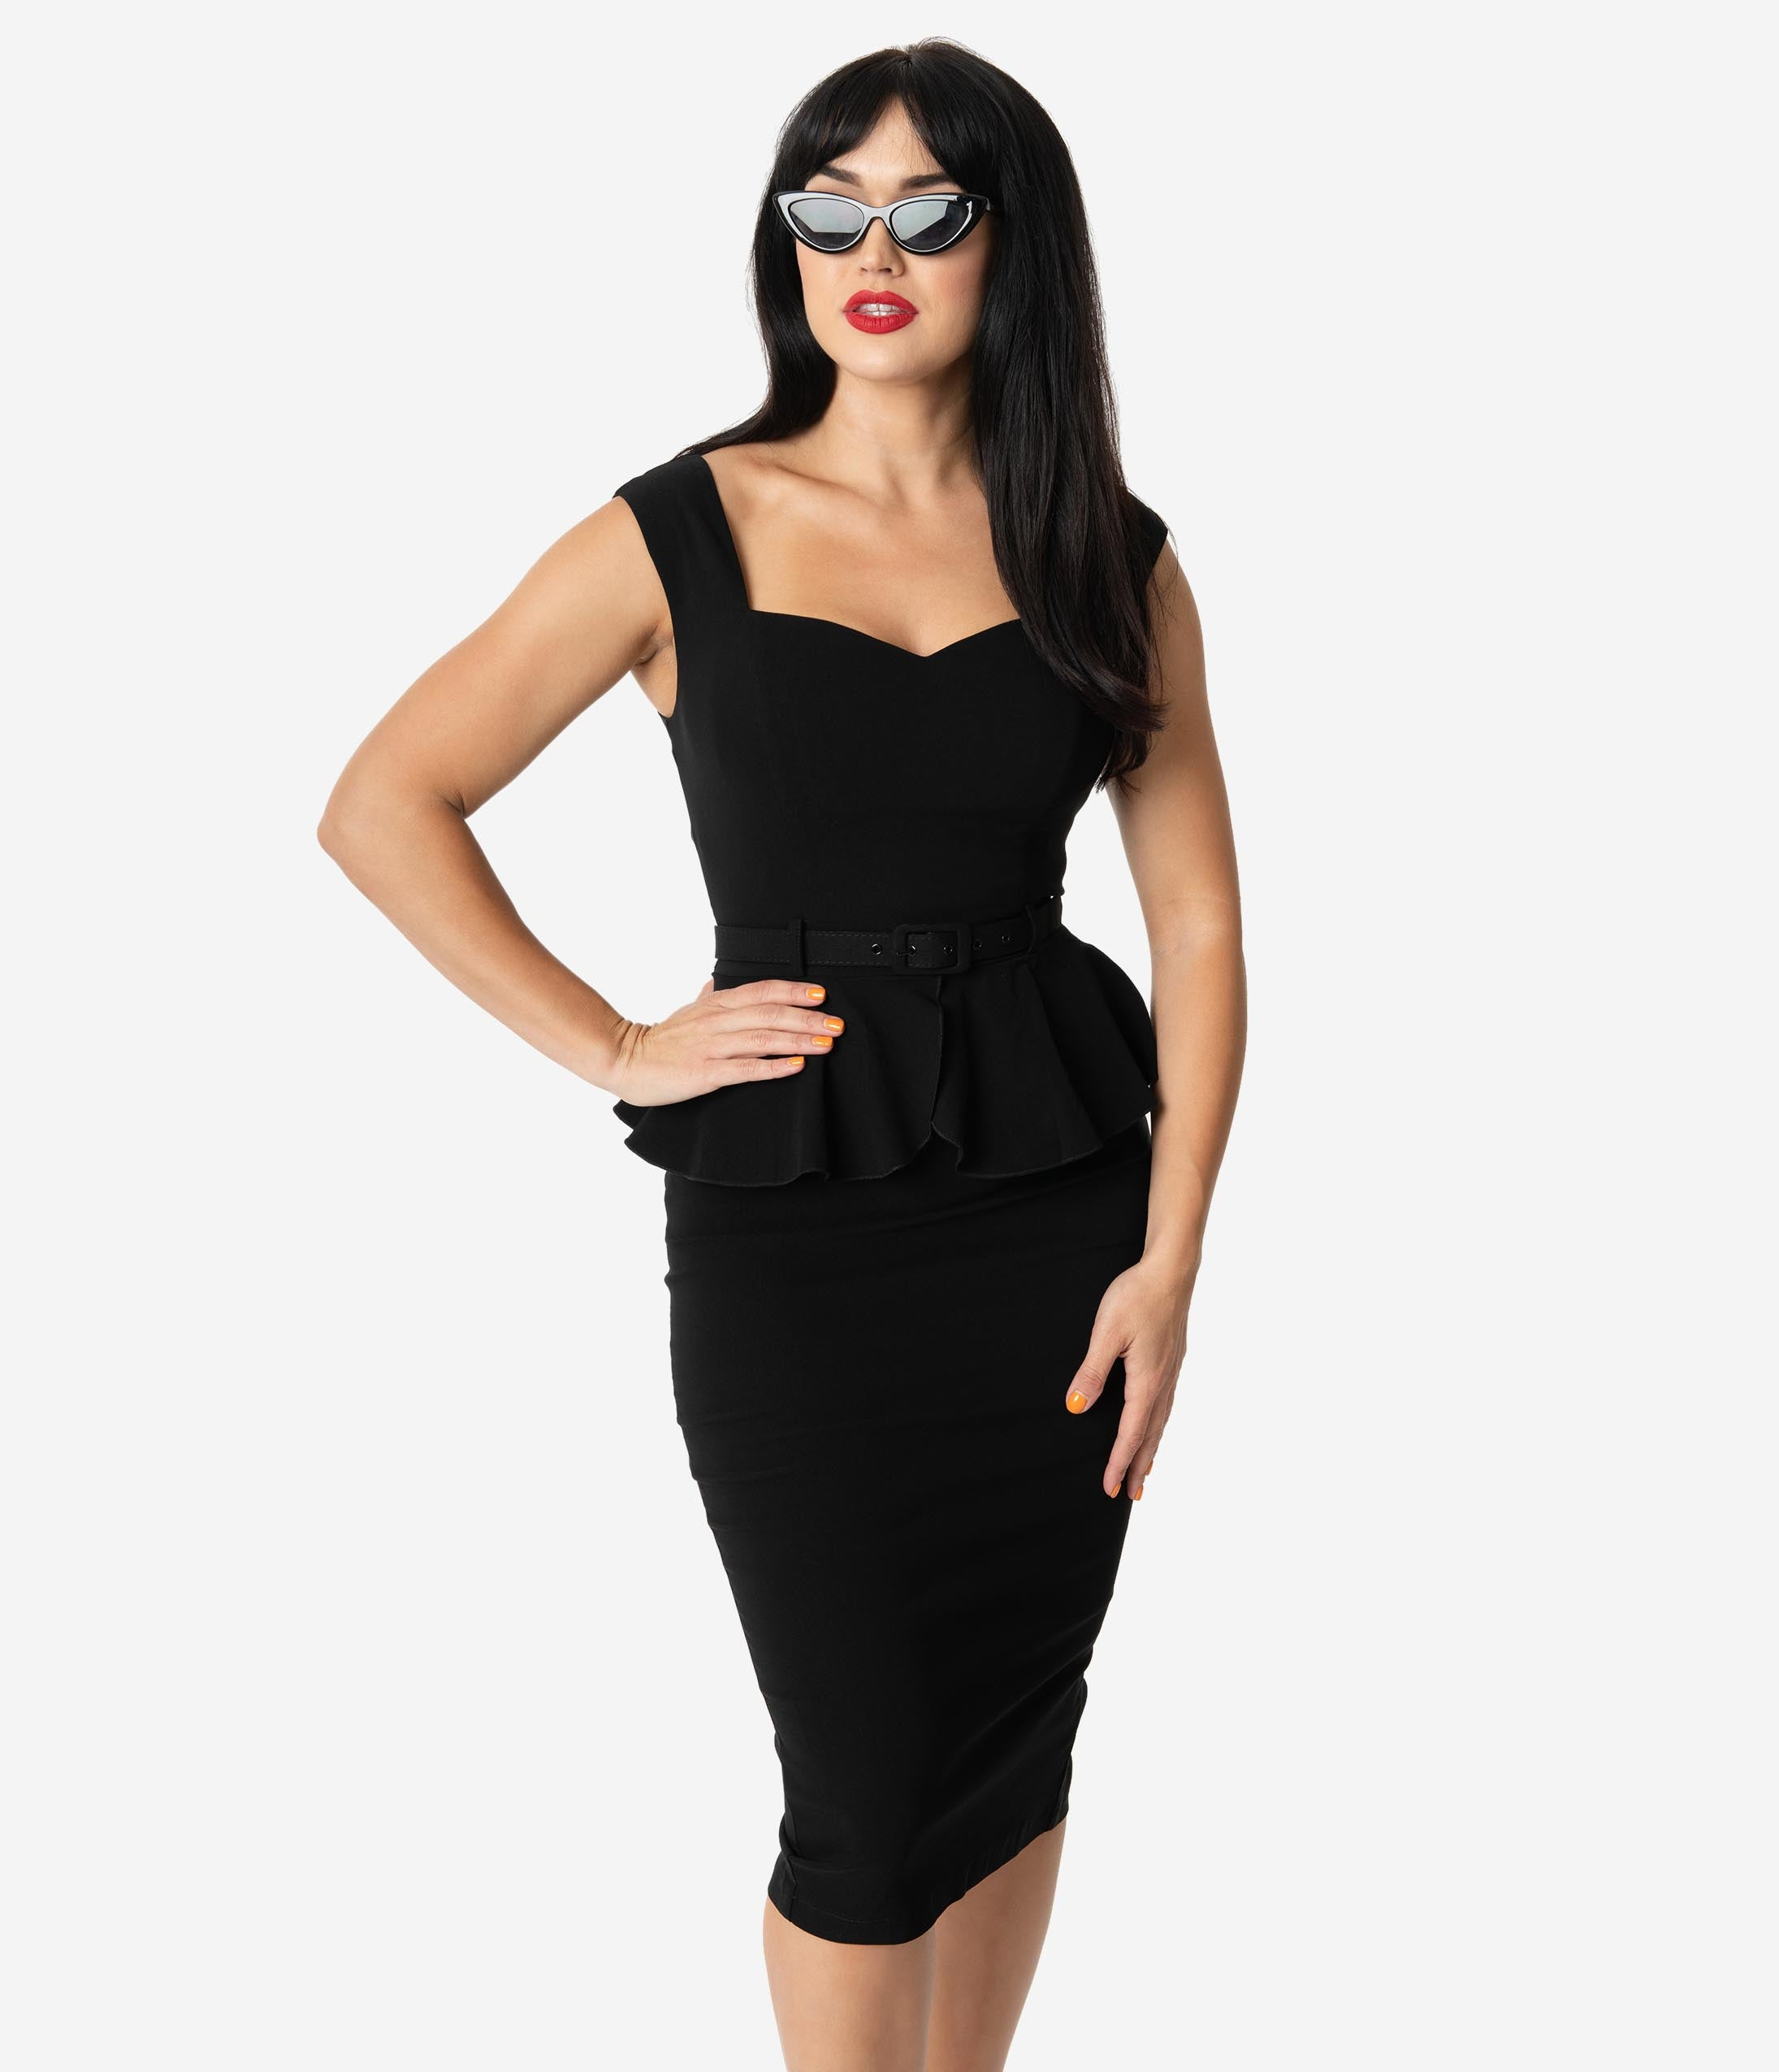 Rockabilly Dresses | Rockabilly Clothing | Viva Las Vegas Collectif 1950S Style Black Stretch Peplum Mae Pencil Dress $68.00 AT vintagedancer.com